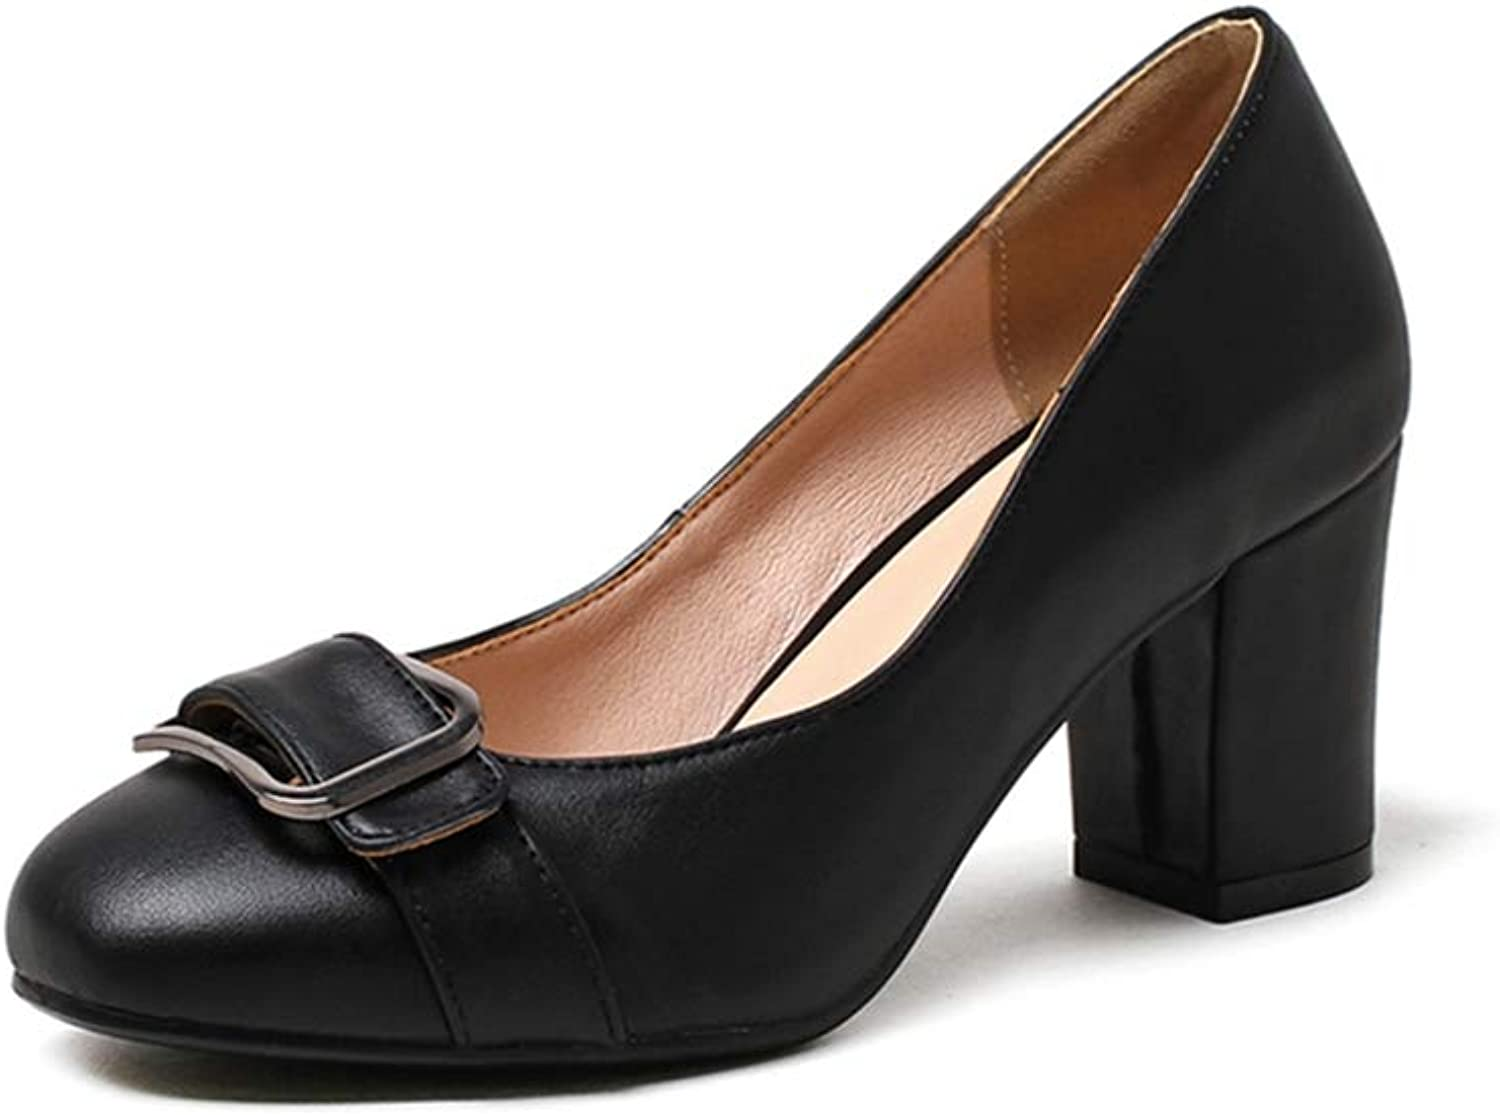 GIY Women's Square Toe Loafers Pump Chunky Block High Heel Slip On Comfy Work Uniform Dress Oxford shoes